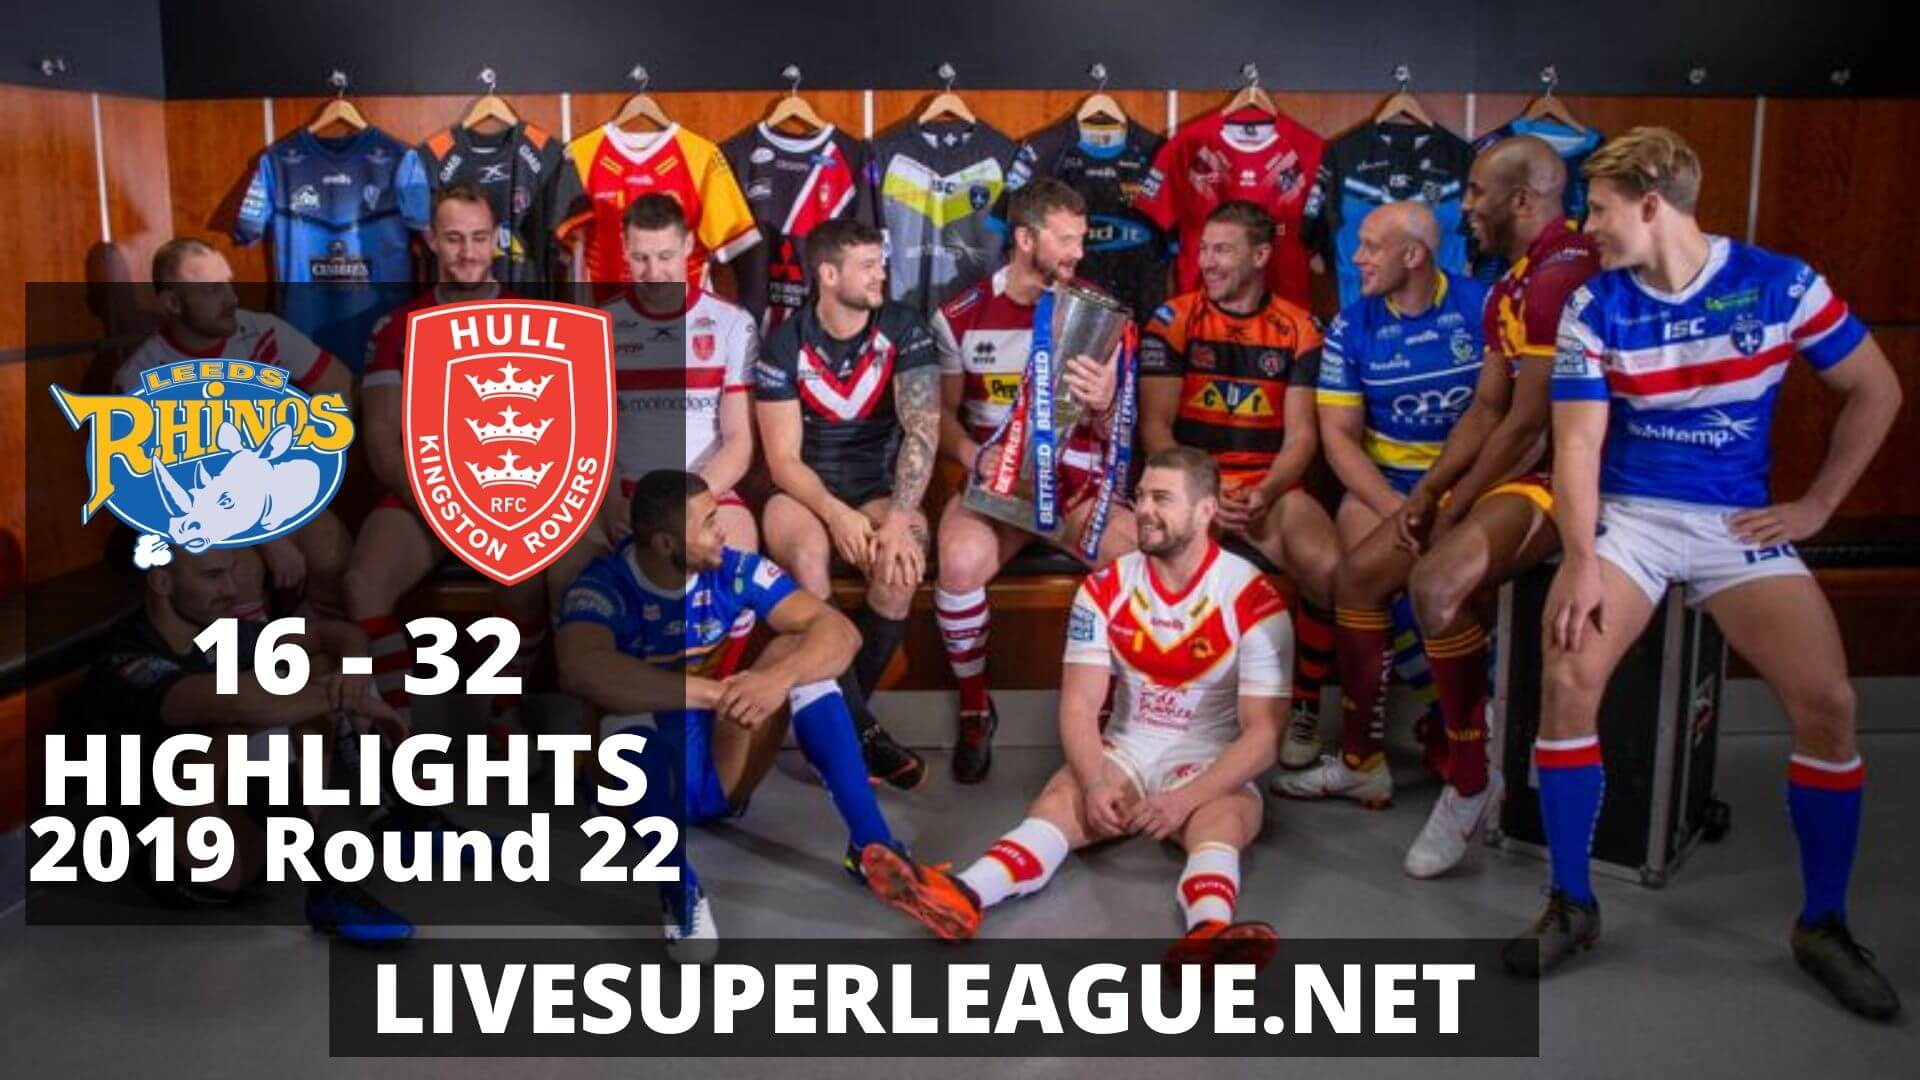 Leeds Rhinos Vs Hull Kingston Rovers Highlights 2019 Round 22